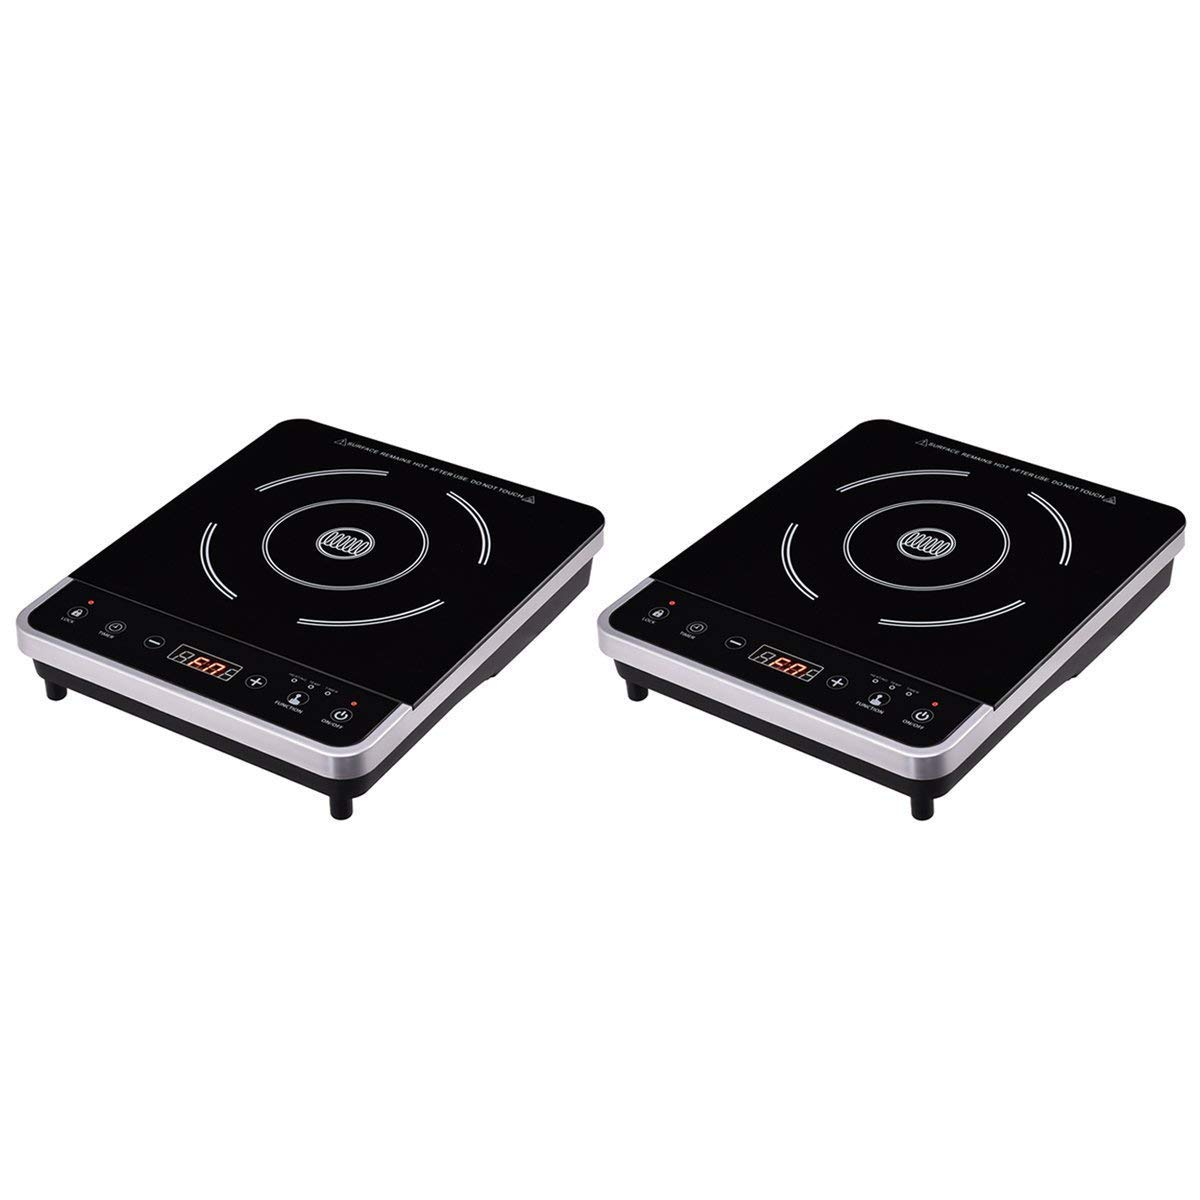 Costway 1800W Digital Induction Cooktop Countertop Burner,Electric Single Burner Hot Plate Cooktop Countertop with Timer,Temperature,Black (2)